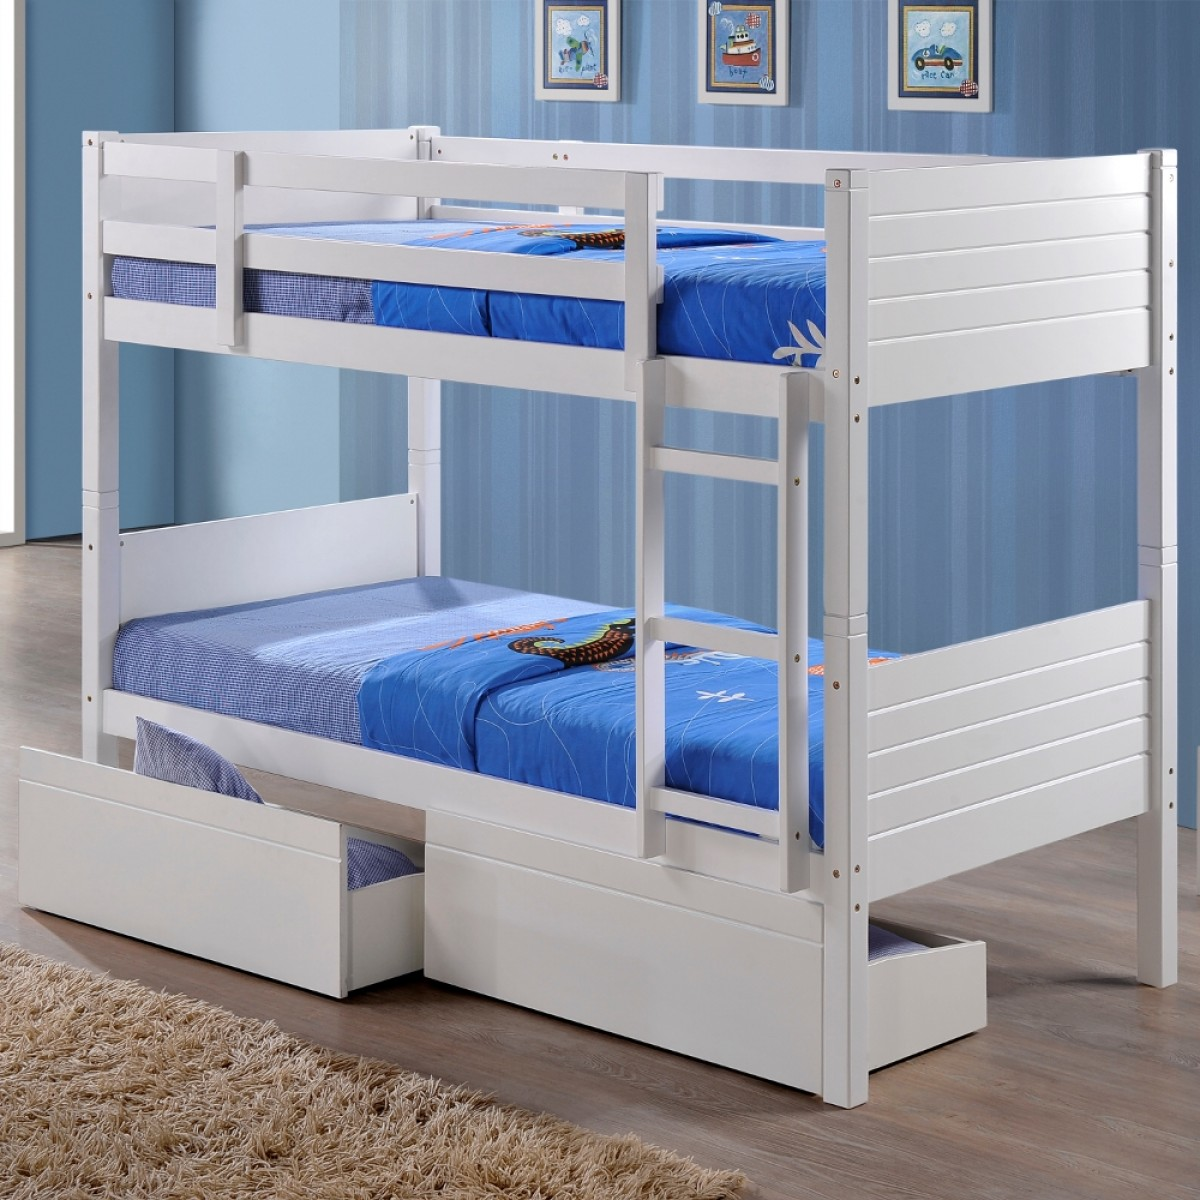 Bedford White Wooden 2 Drawer Storage Bunk Bed